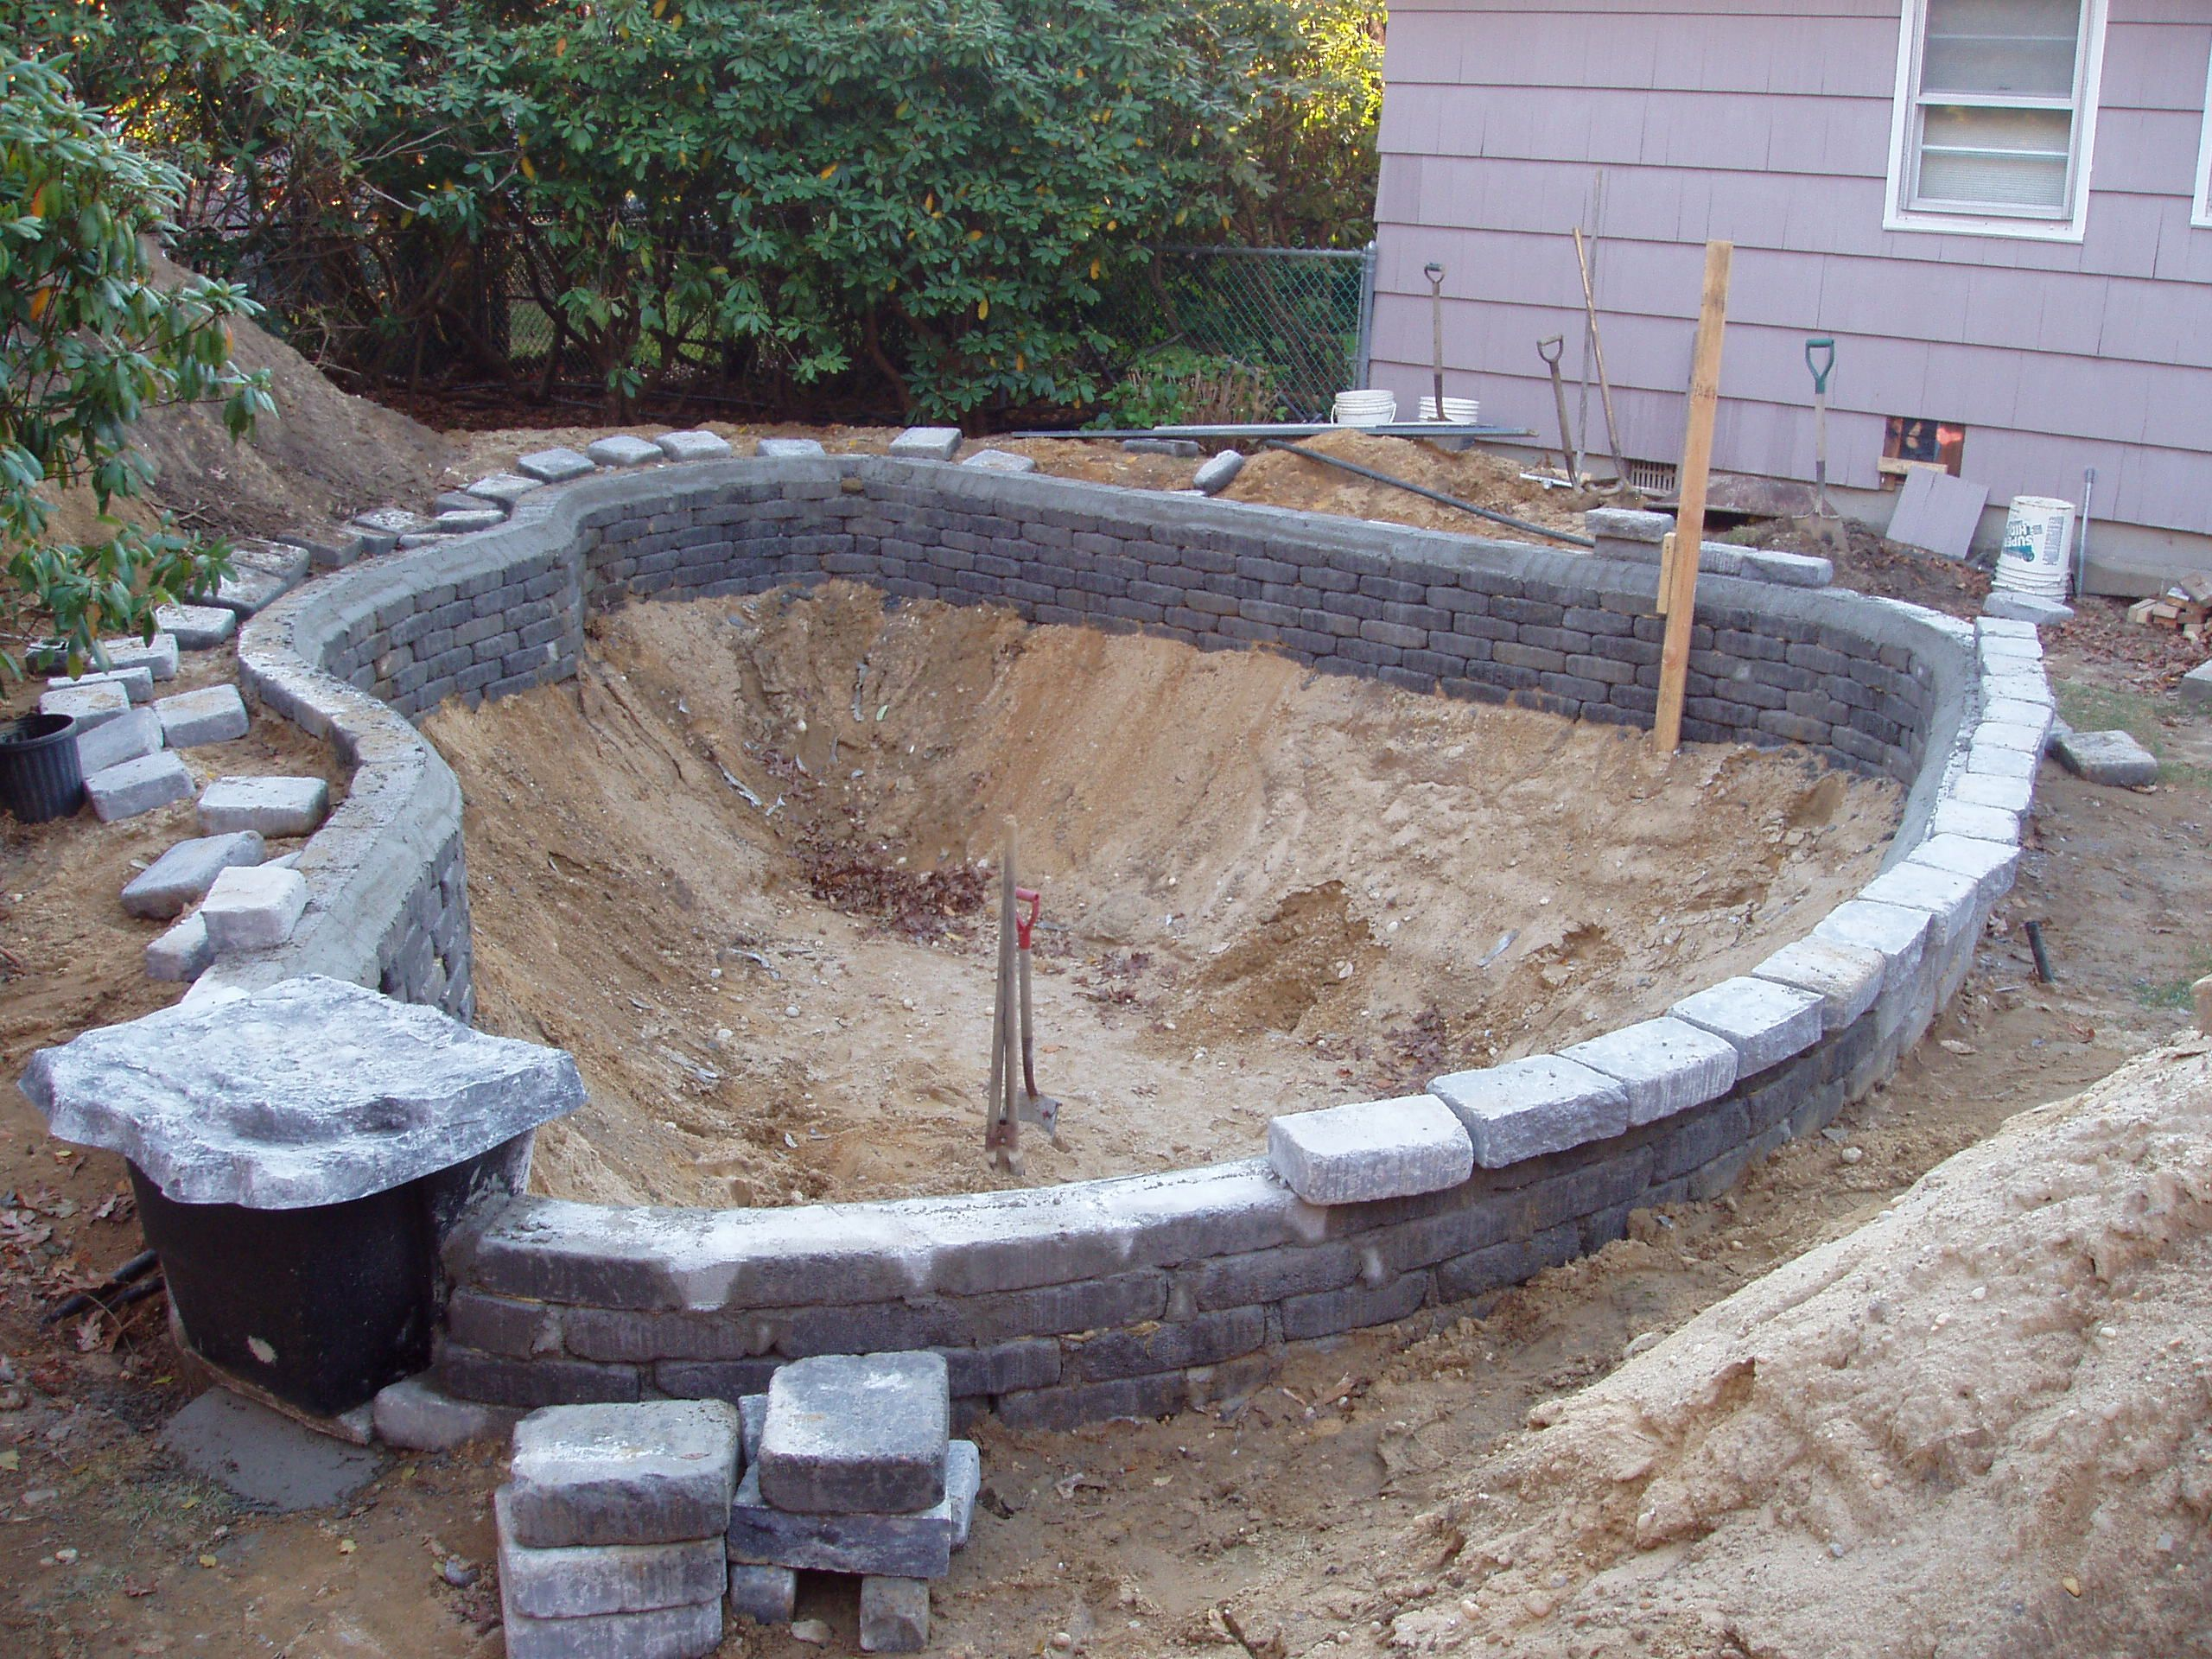 Pond design and construction google search aquaponics ideas pinterest pond design and Design pond